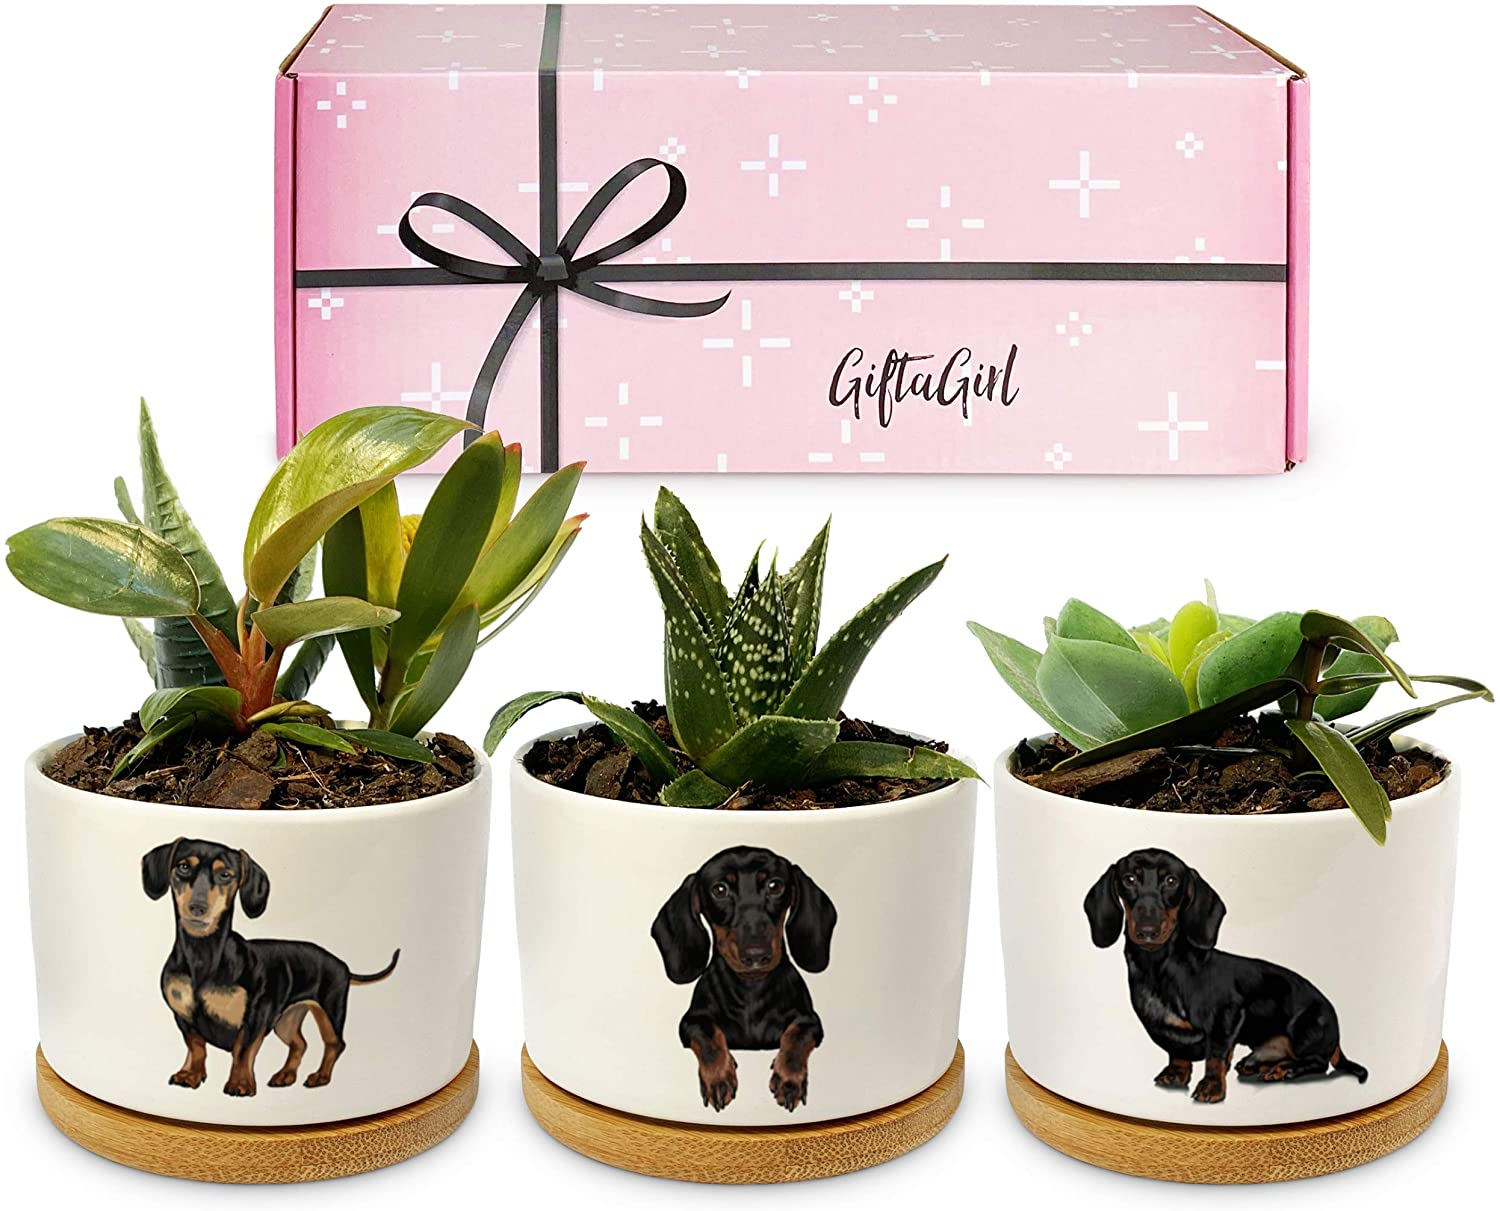 GIFTAGIRL Dachshund Gifts for Women or Weiner Dog Gifts for Women - Our Succulent Pots Make Great Daschund Gifts for Women. They Love Their Wiener Dog Gifts